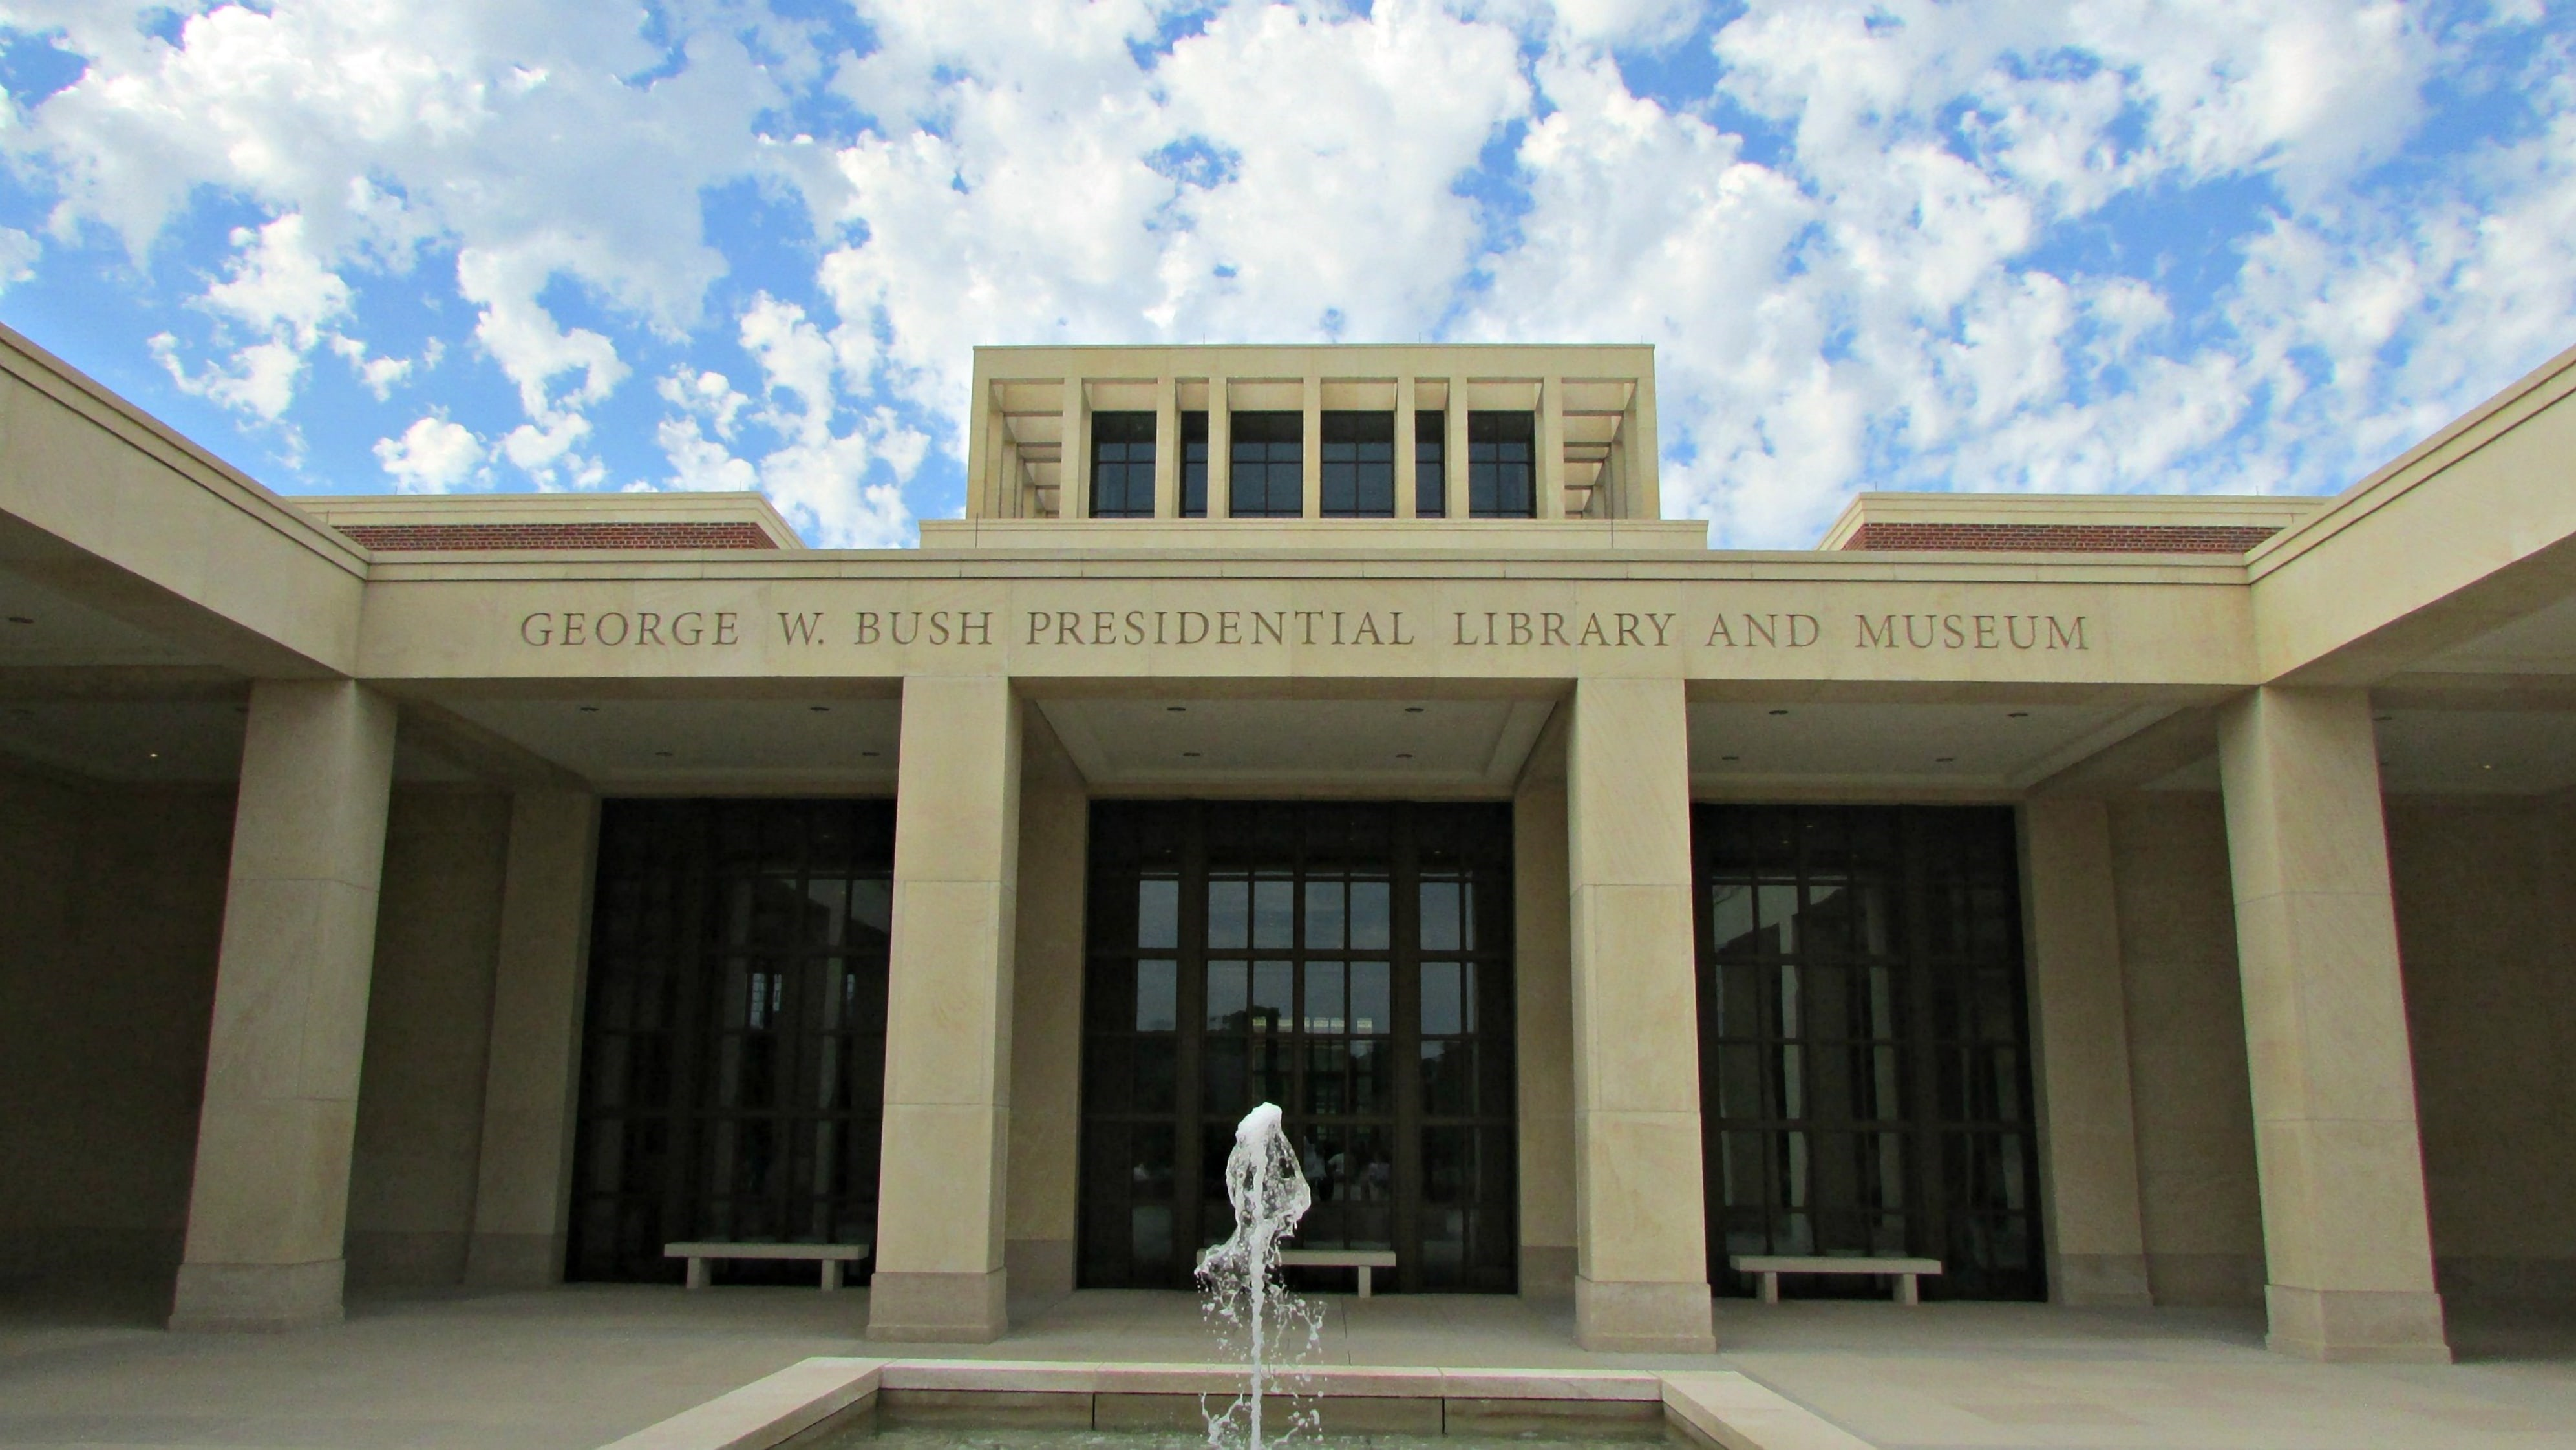 Presidential Museums and Libraries: Special Focus on the George W. Bush Presidential Library and Museum